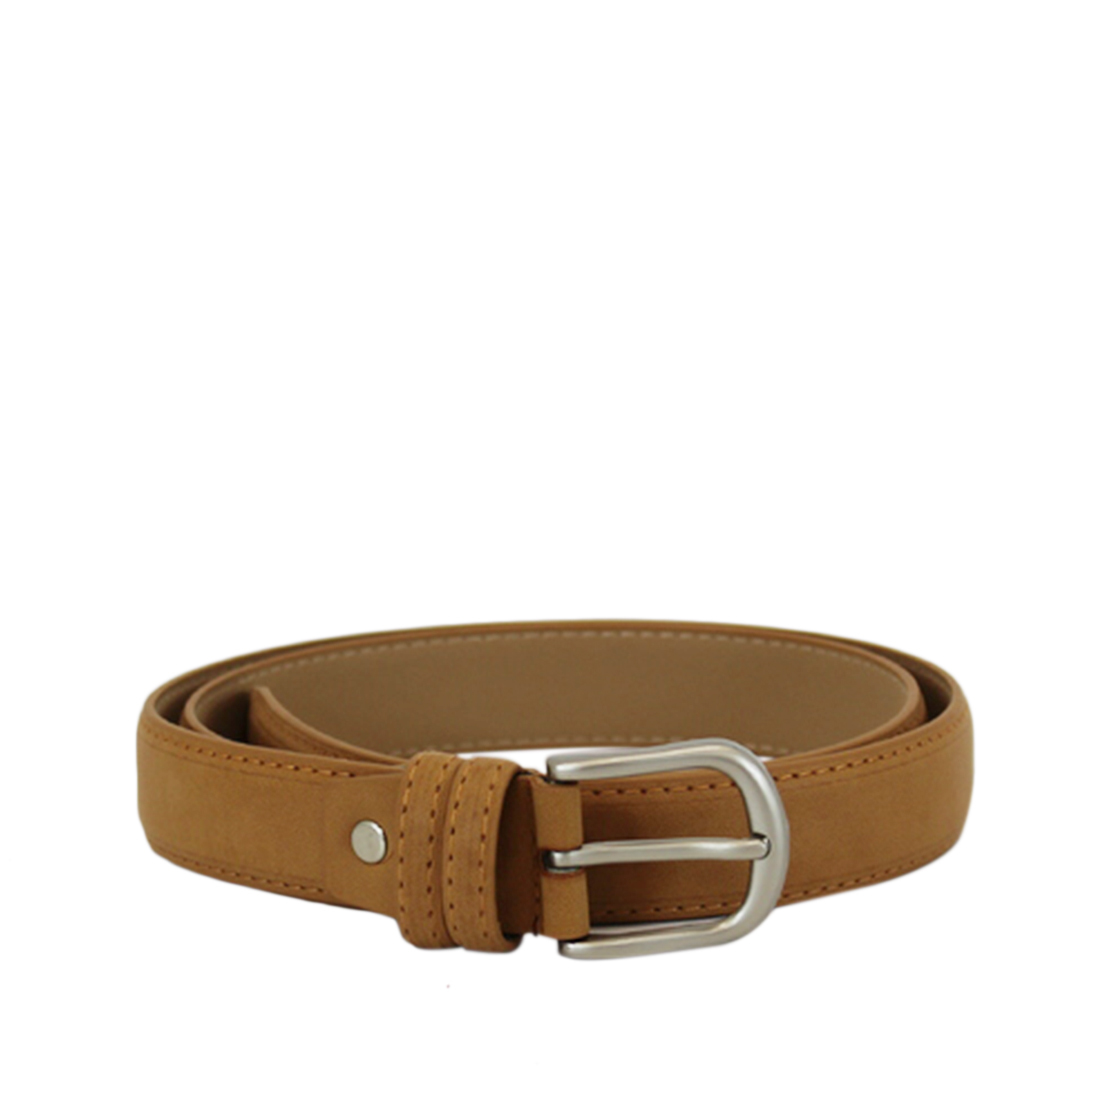 Plain with oval silver buckle